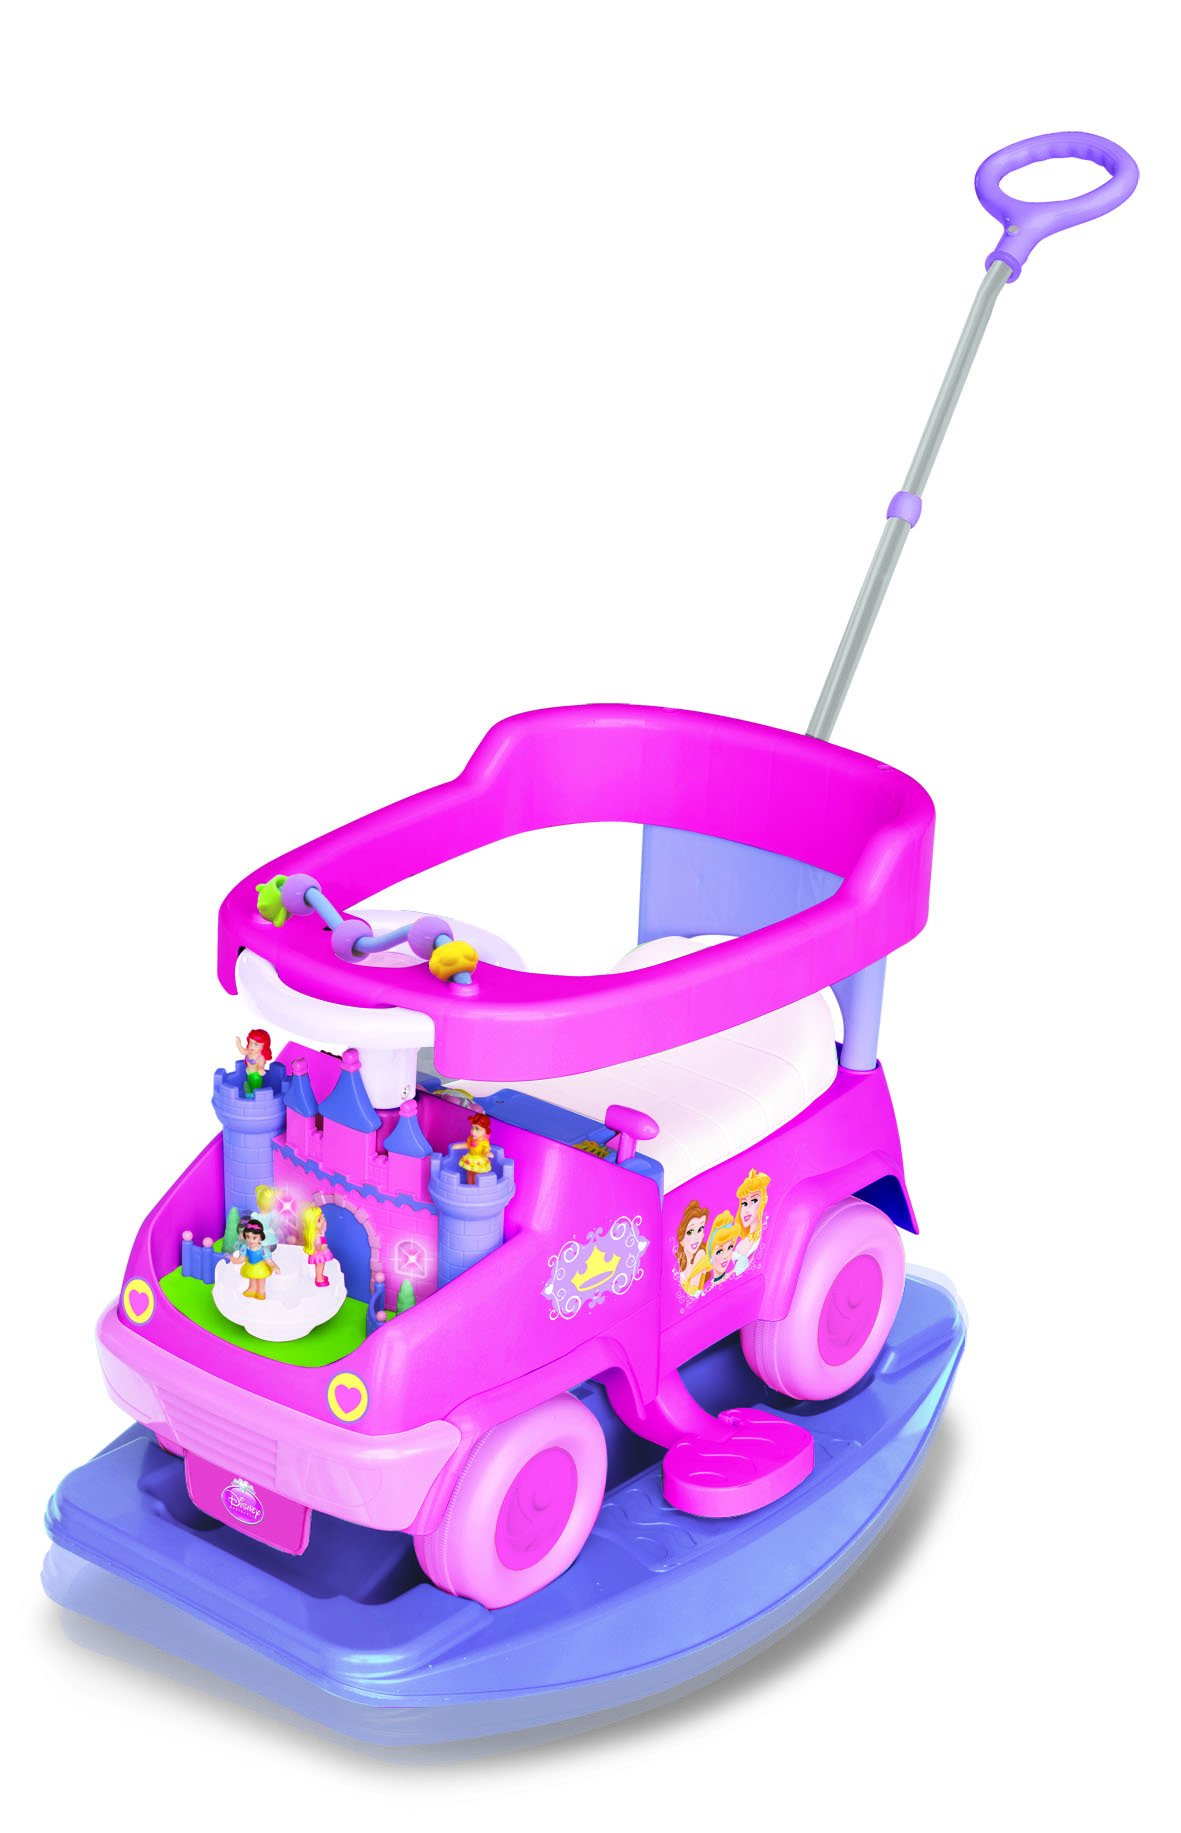 Kiddieland 4-in-1 Rock n Activity Ride on (Baby Princess) n, Multi